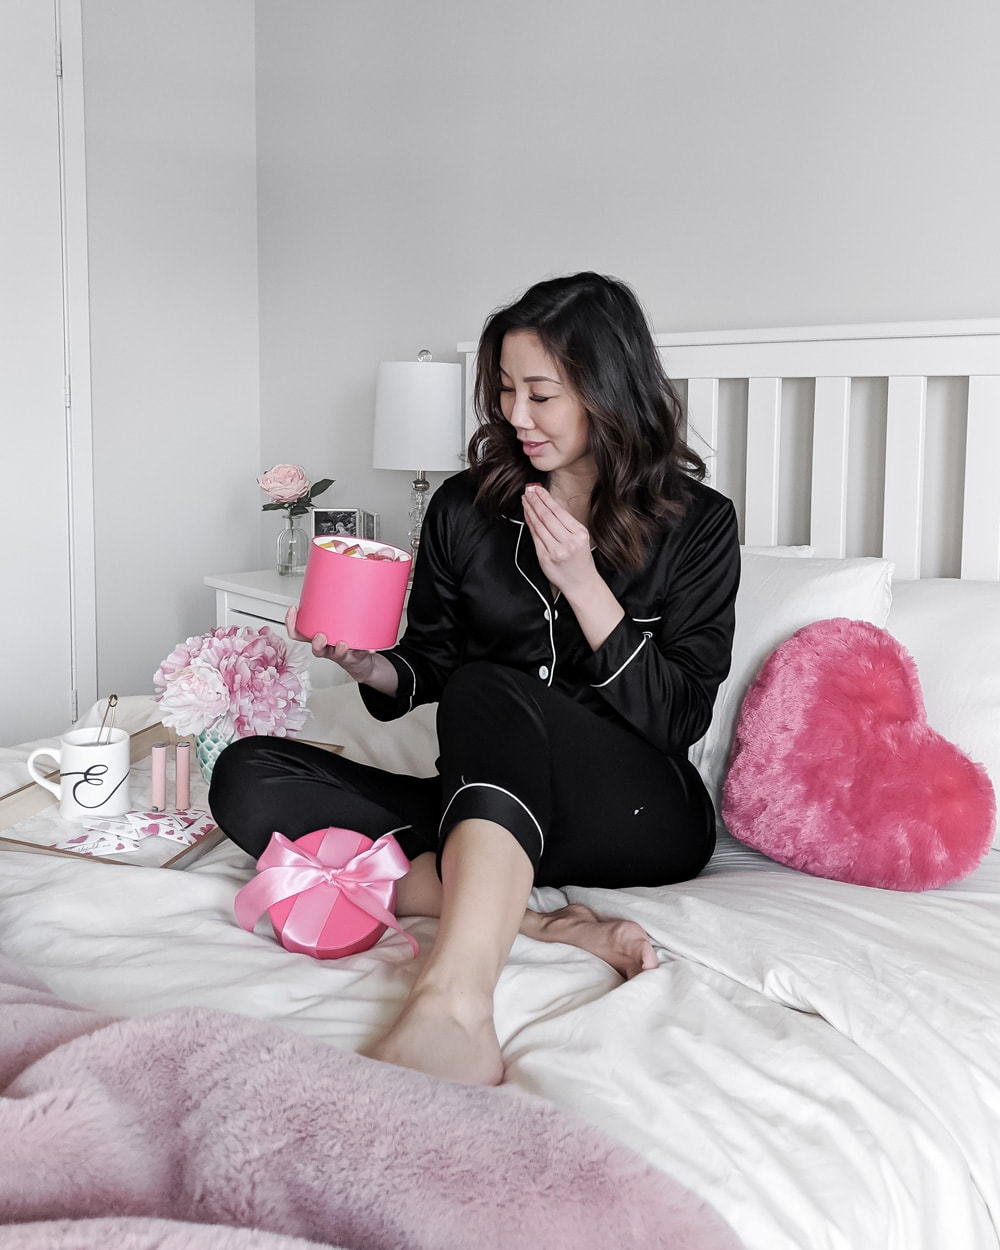 Black Pj's with Piping - Style Blogger YesMissy